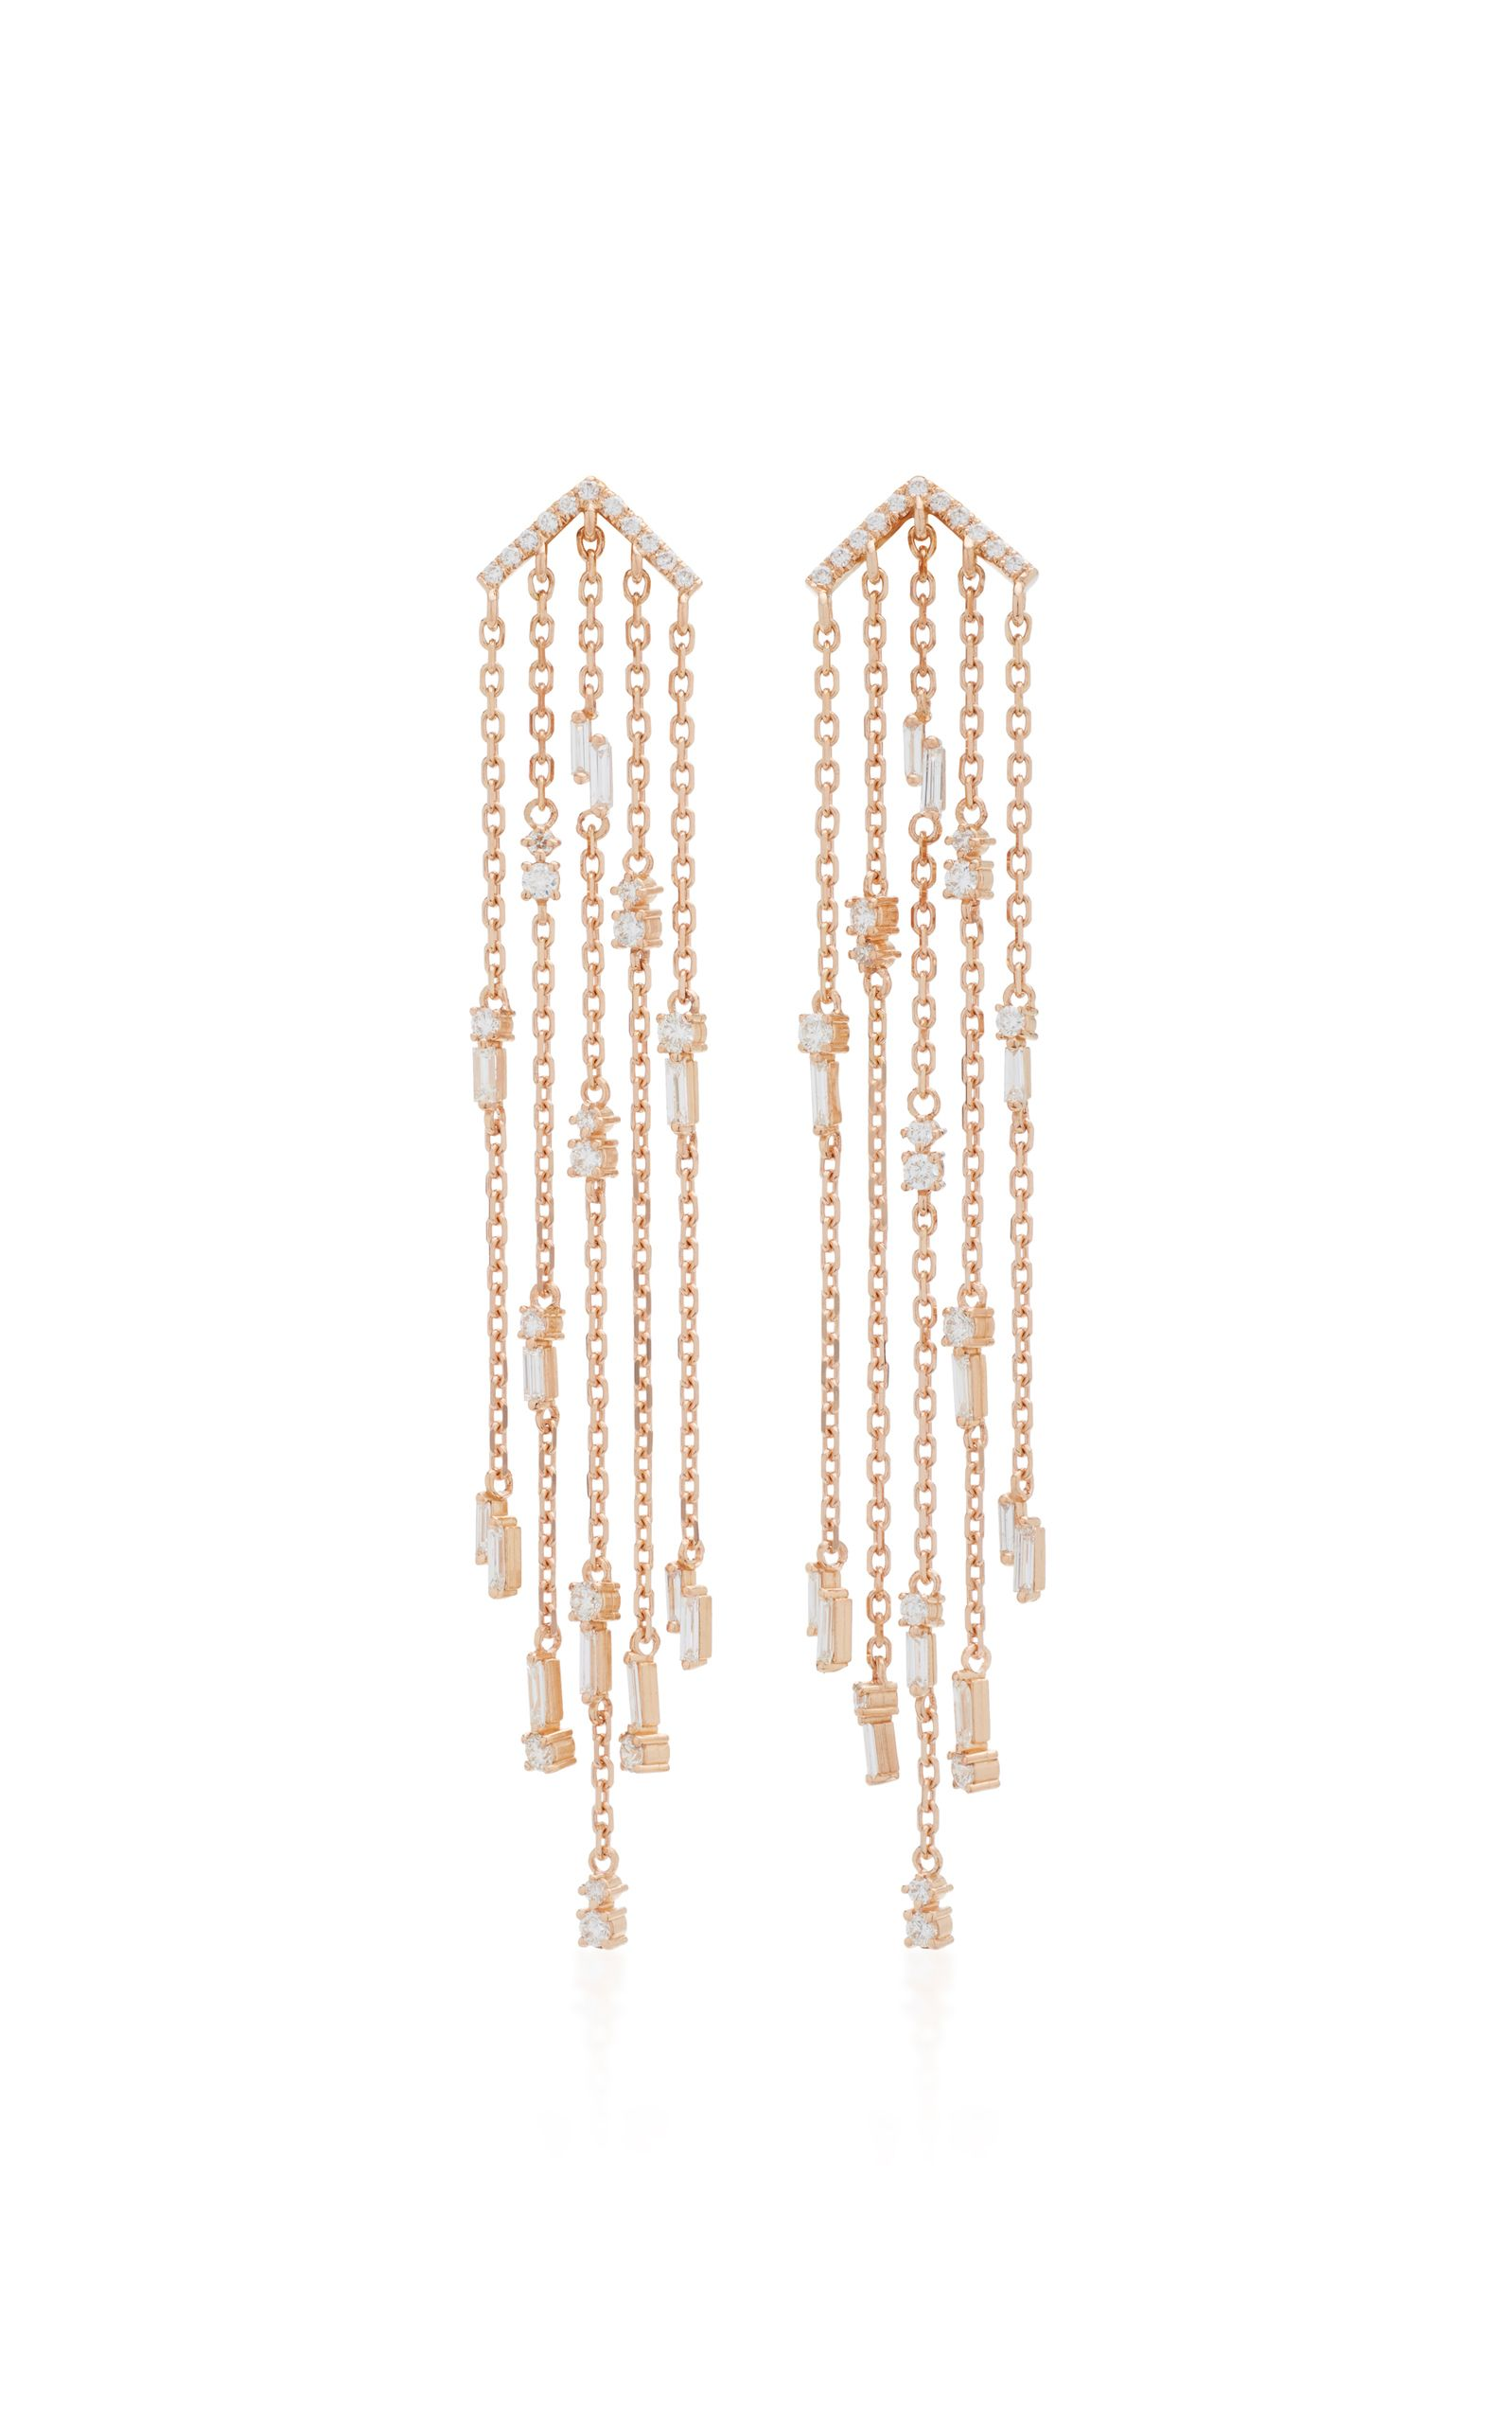 Suzanne Kalan 18K Rose Gold Diamond Chandelier Earrings